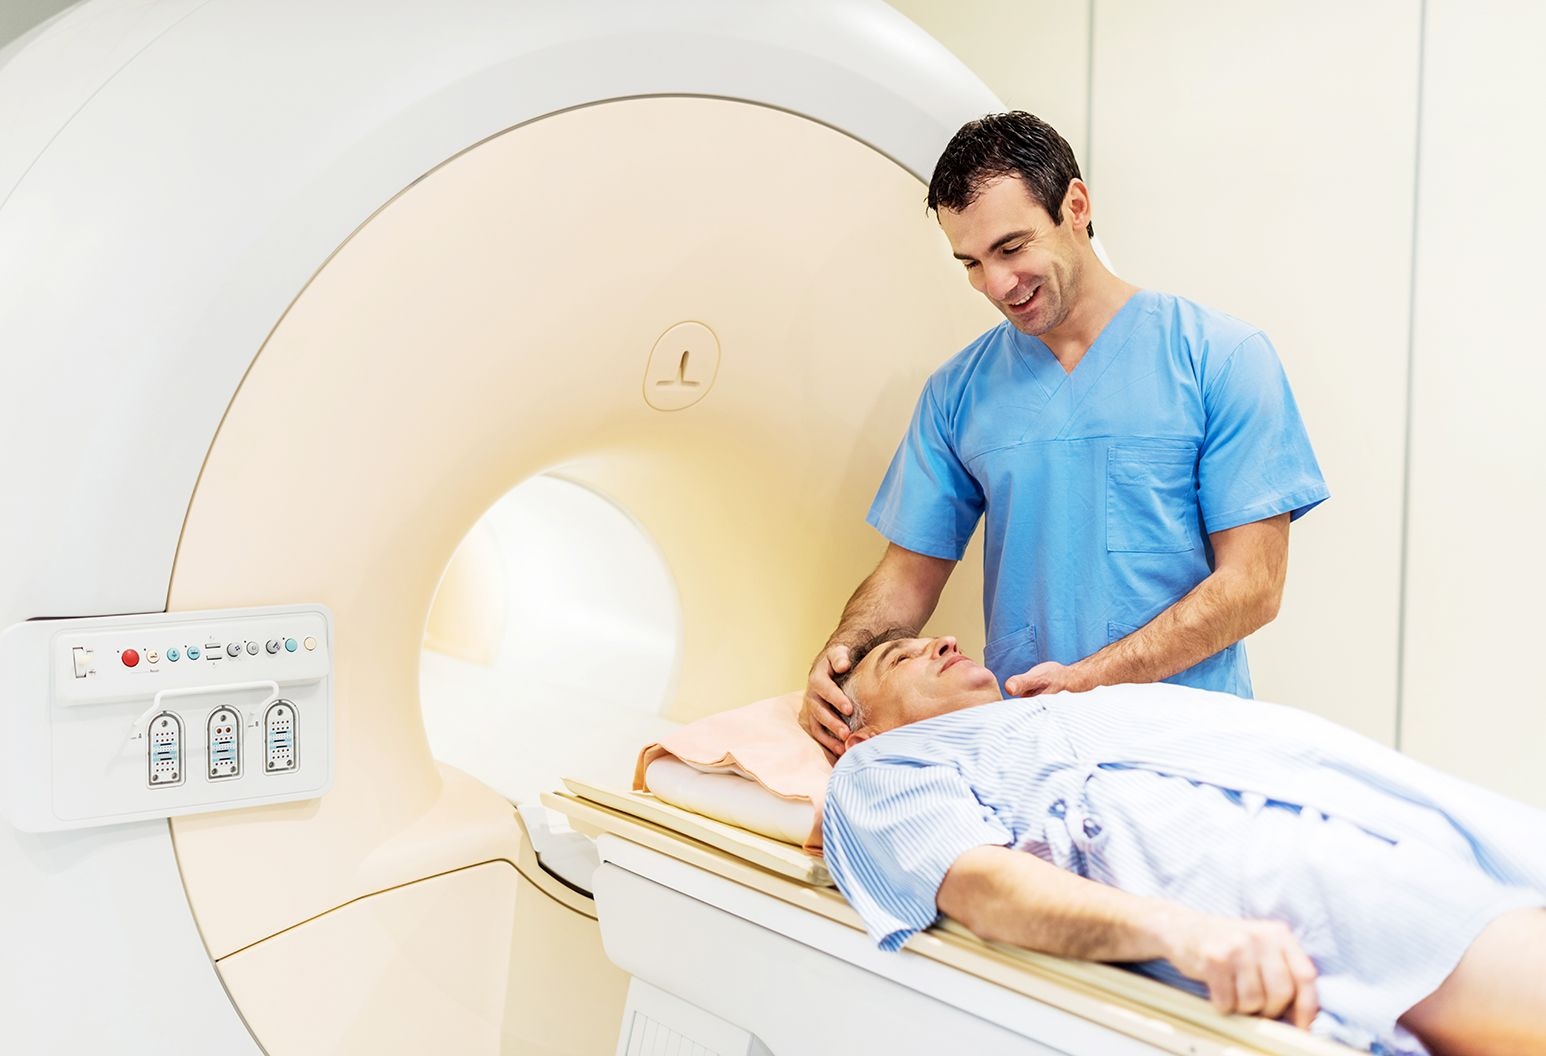 radiologist is preparing a patient who is about to take an MRI Scan.